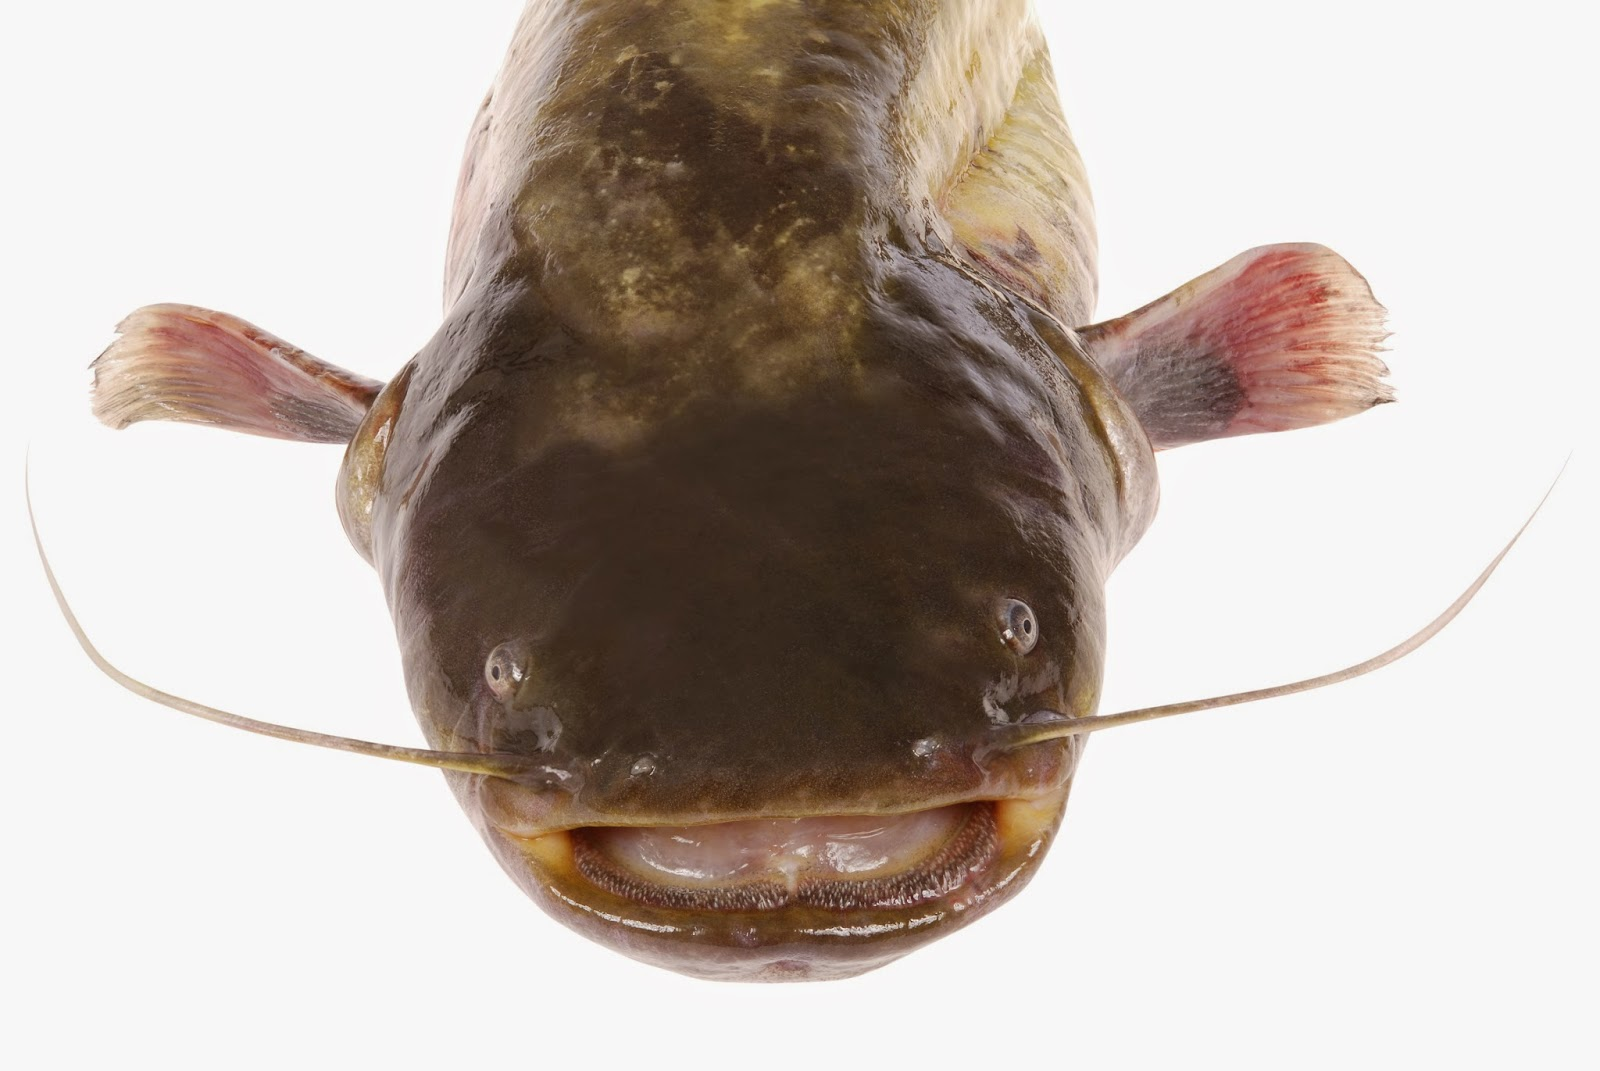 Catfish on white background